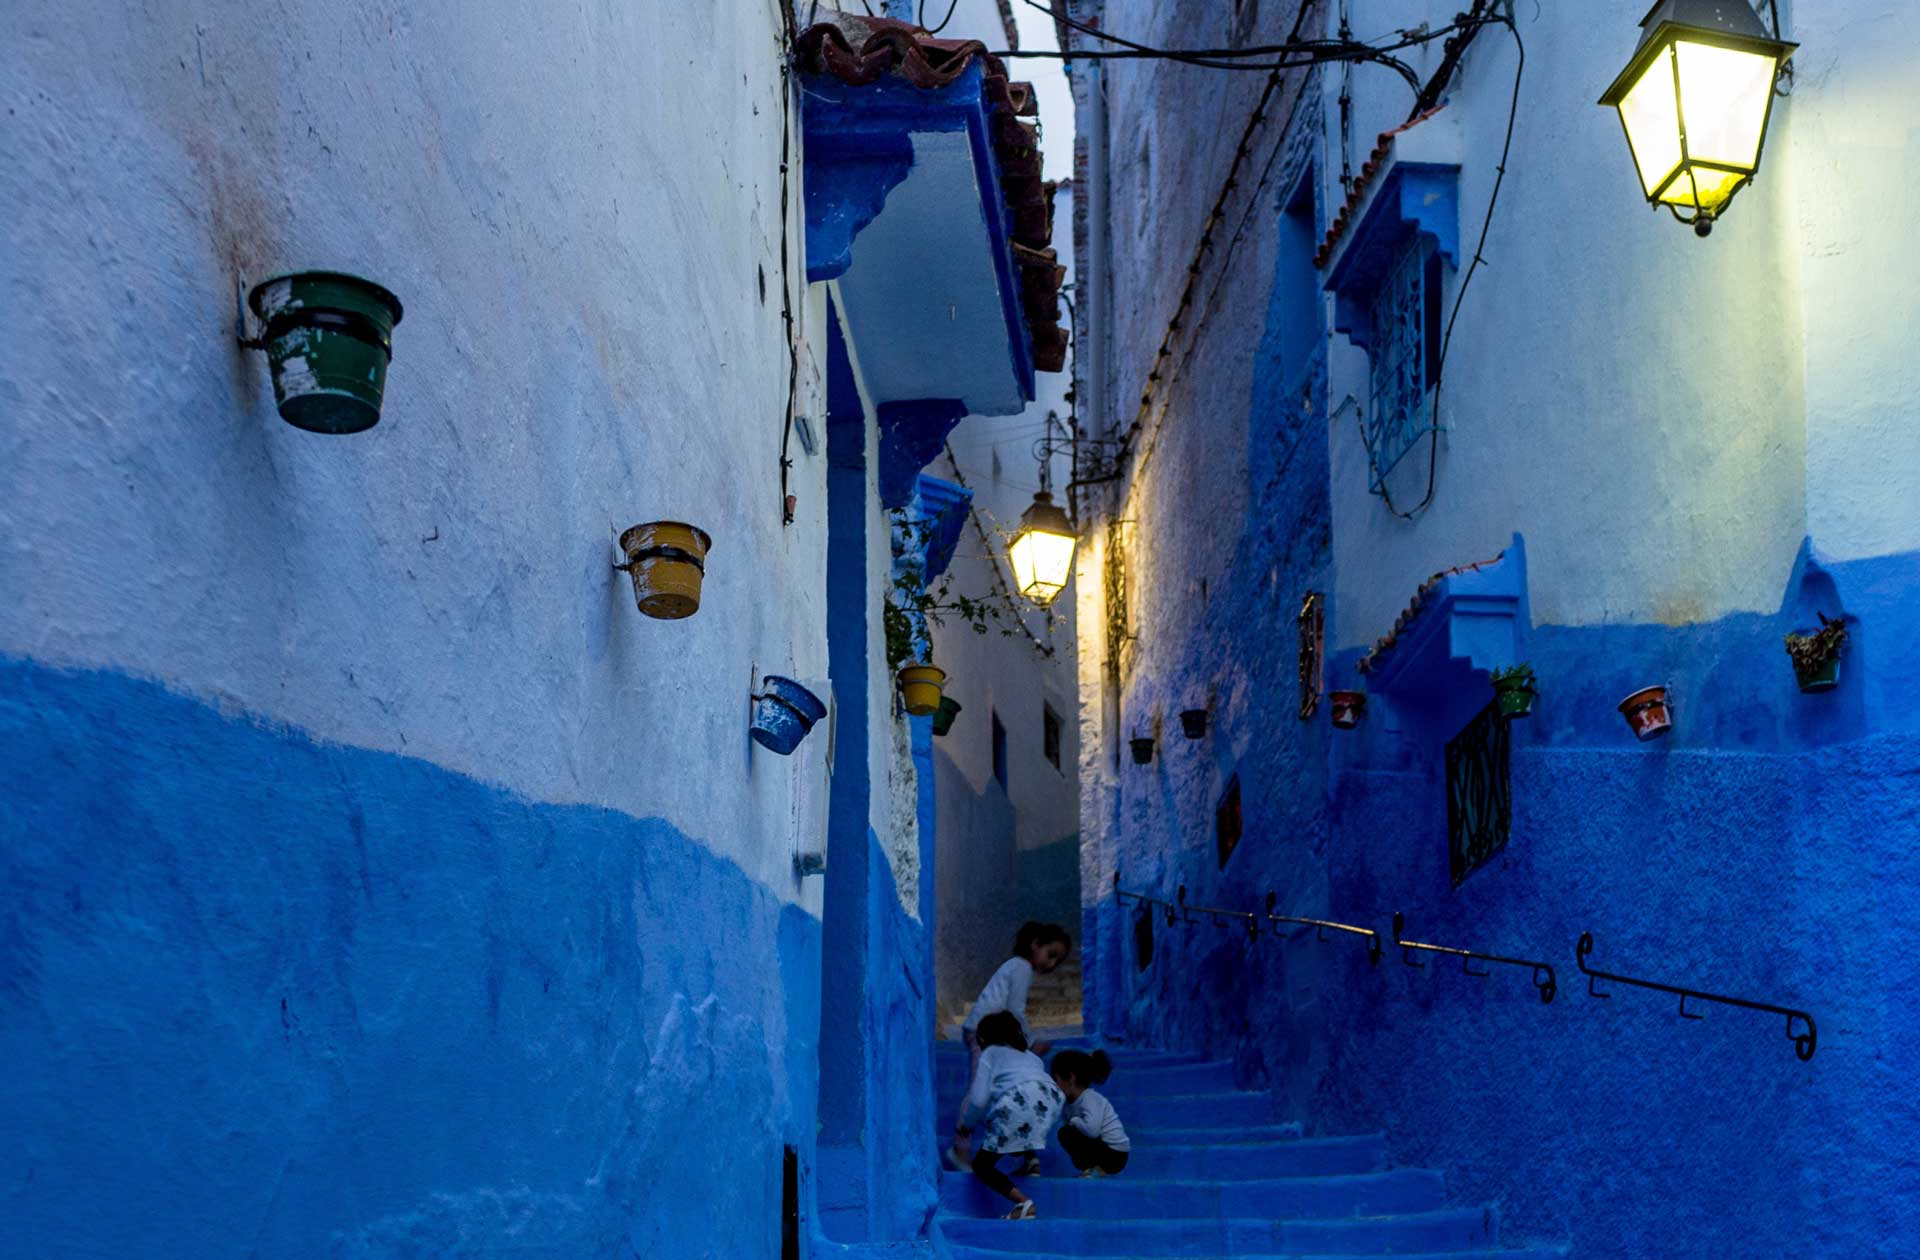 Pacific Place Chefchaouen